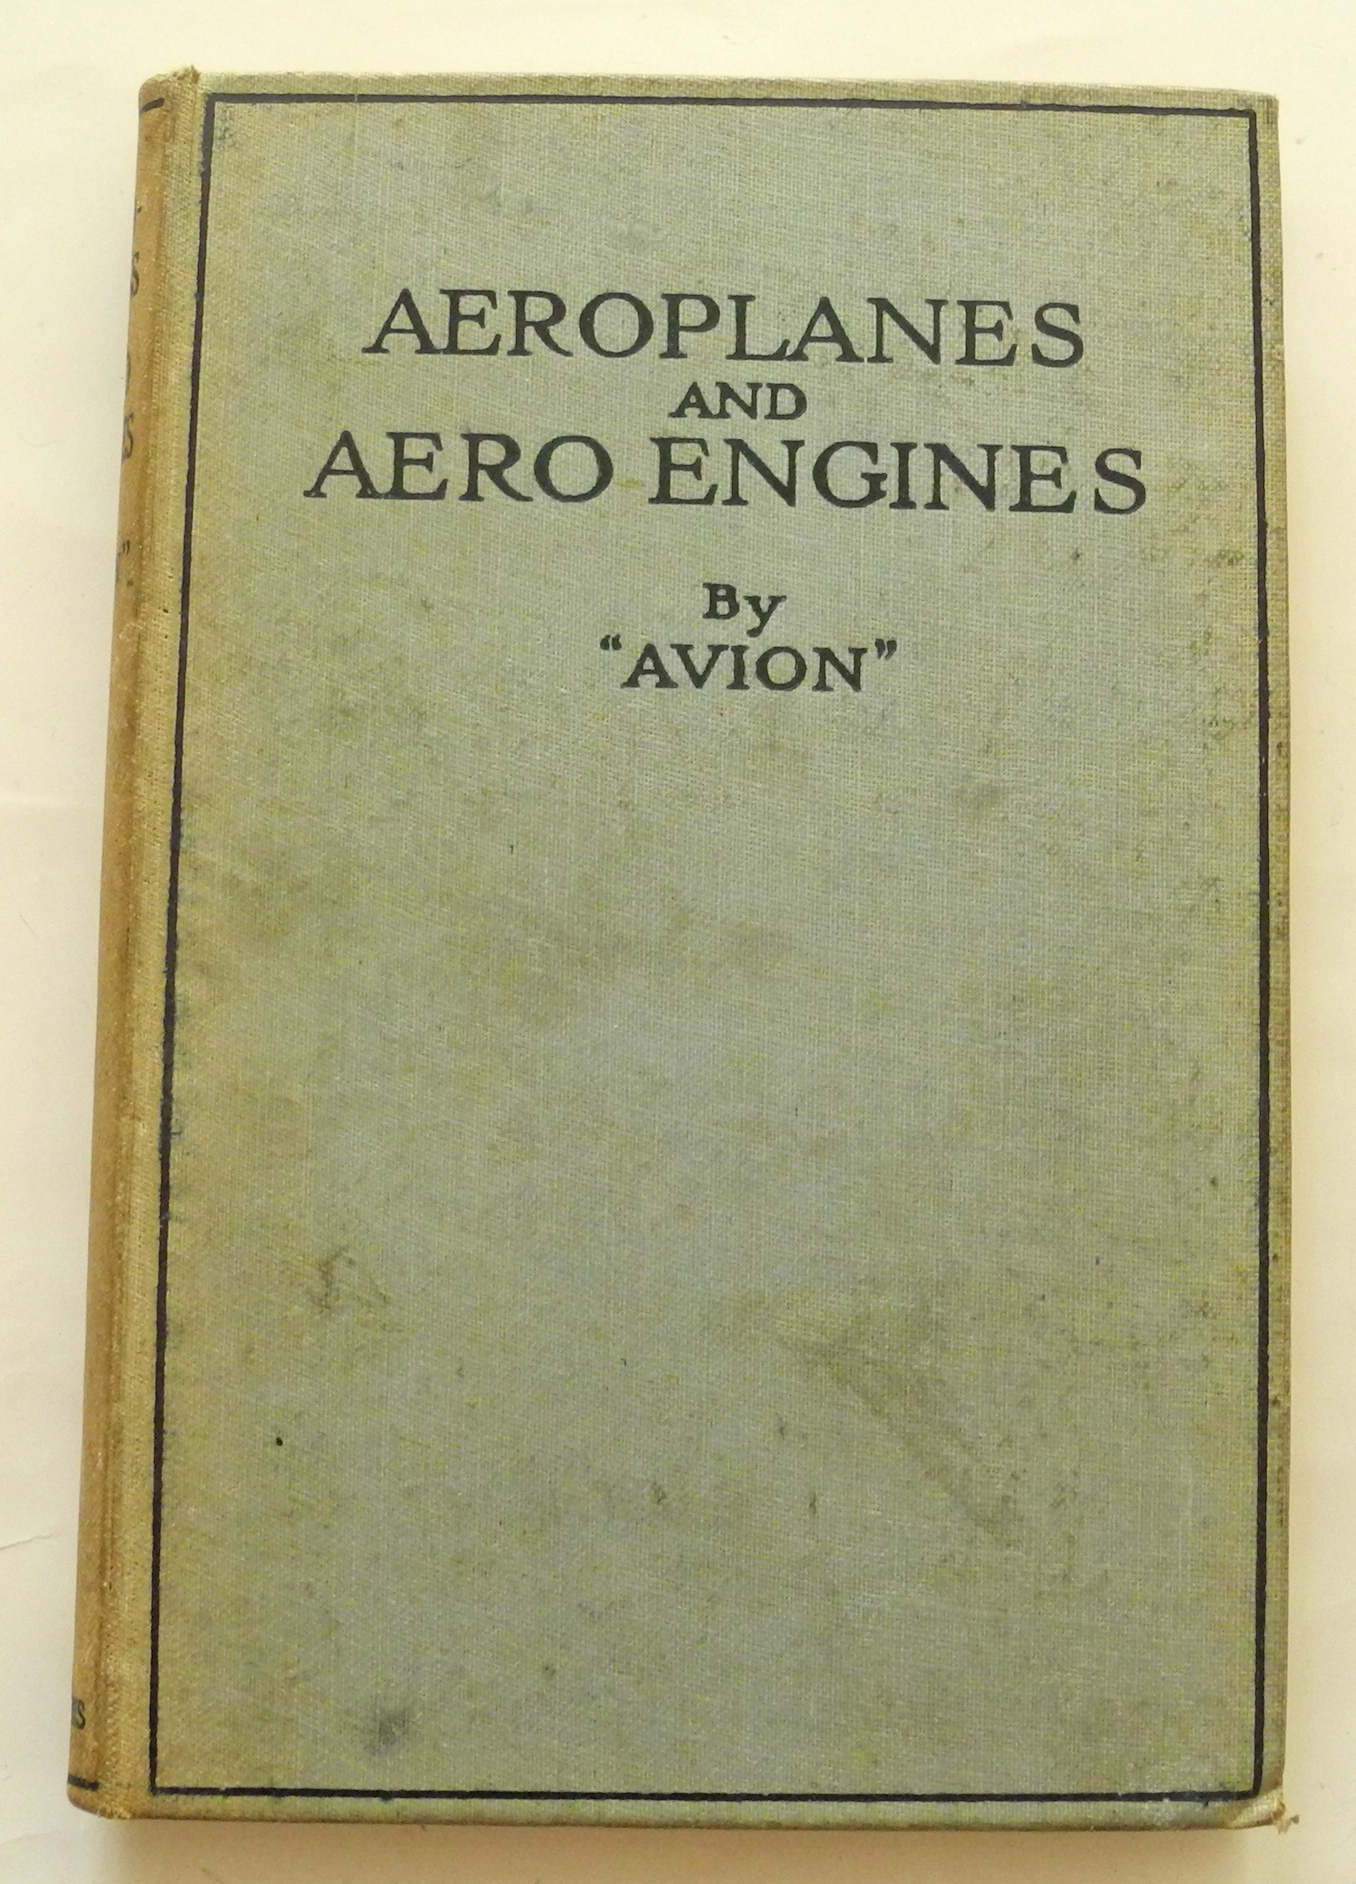 Aeroplanes and Aero Engines